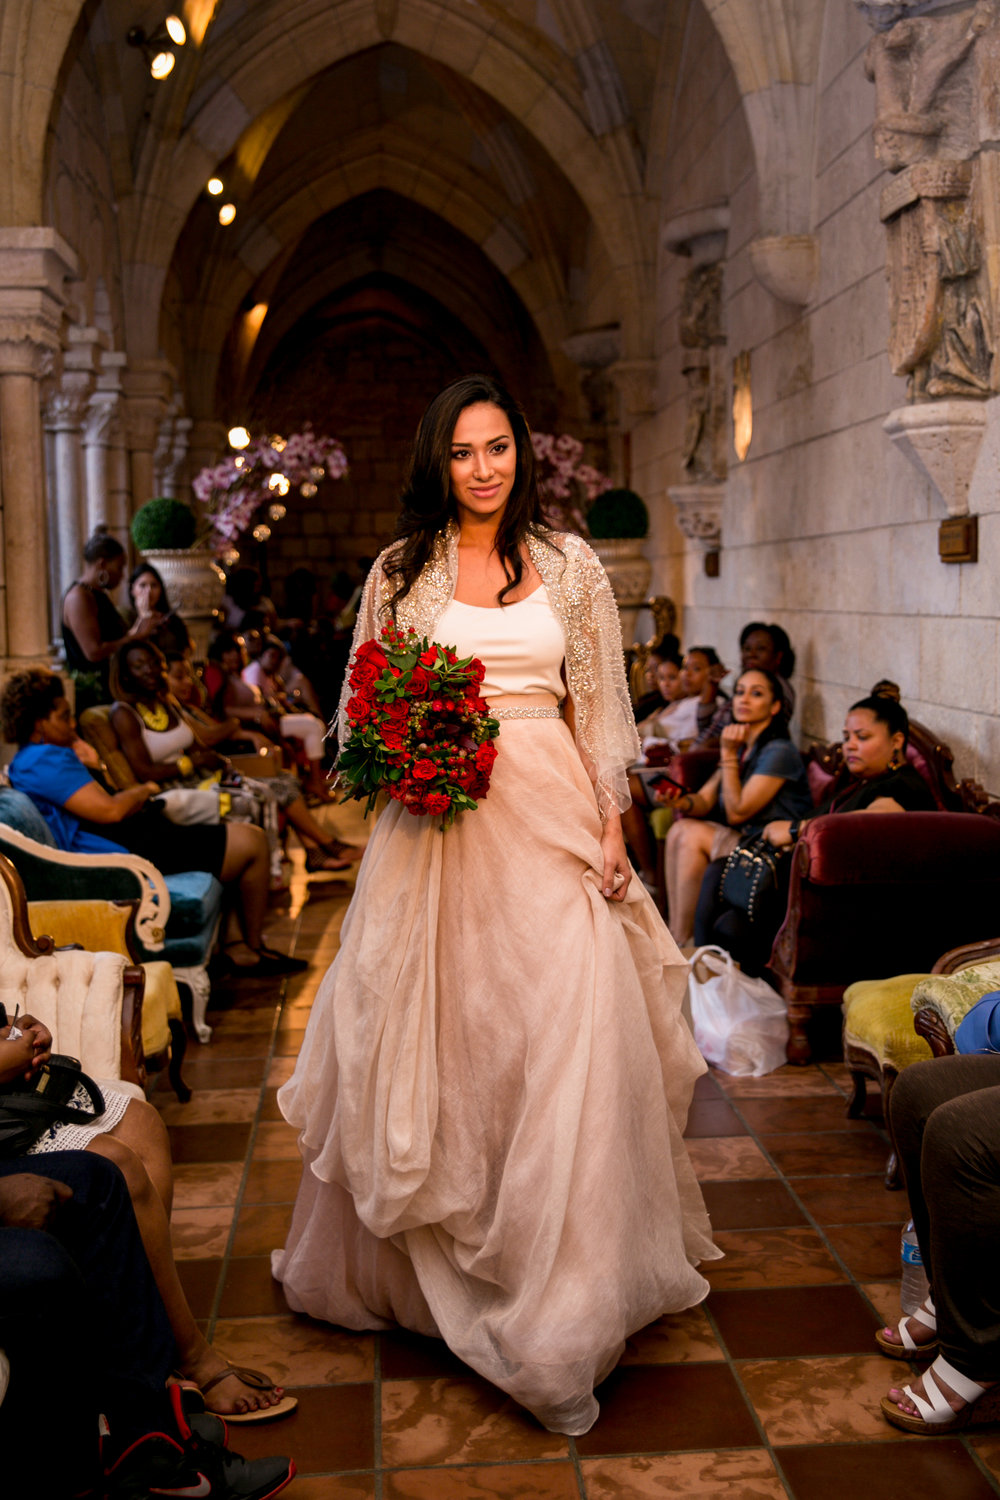 Fashion Presentation during the February 2017 show at the Ancient Spanish Monastery in North Miami Beach, FL